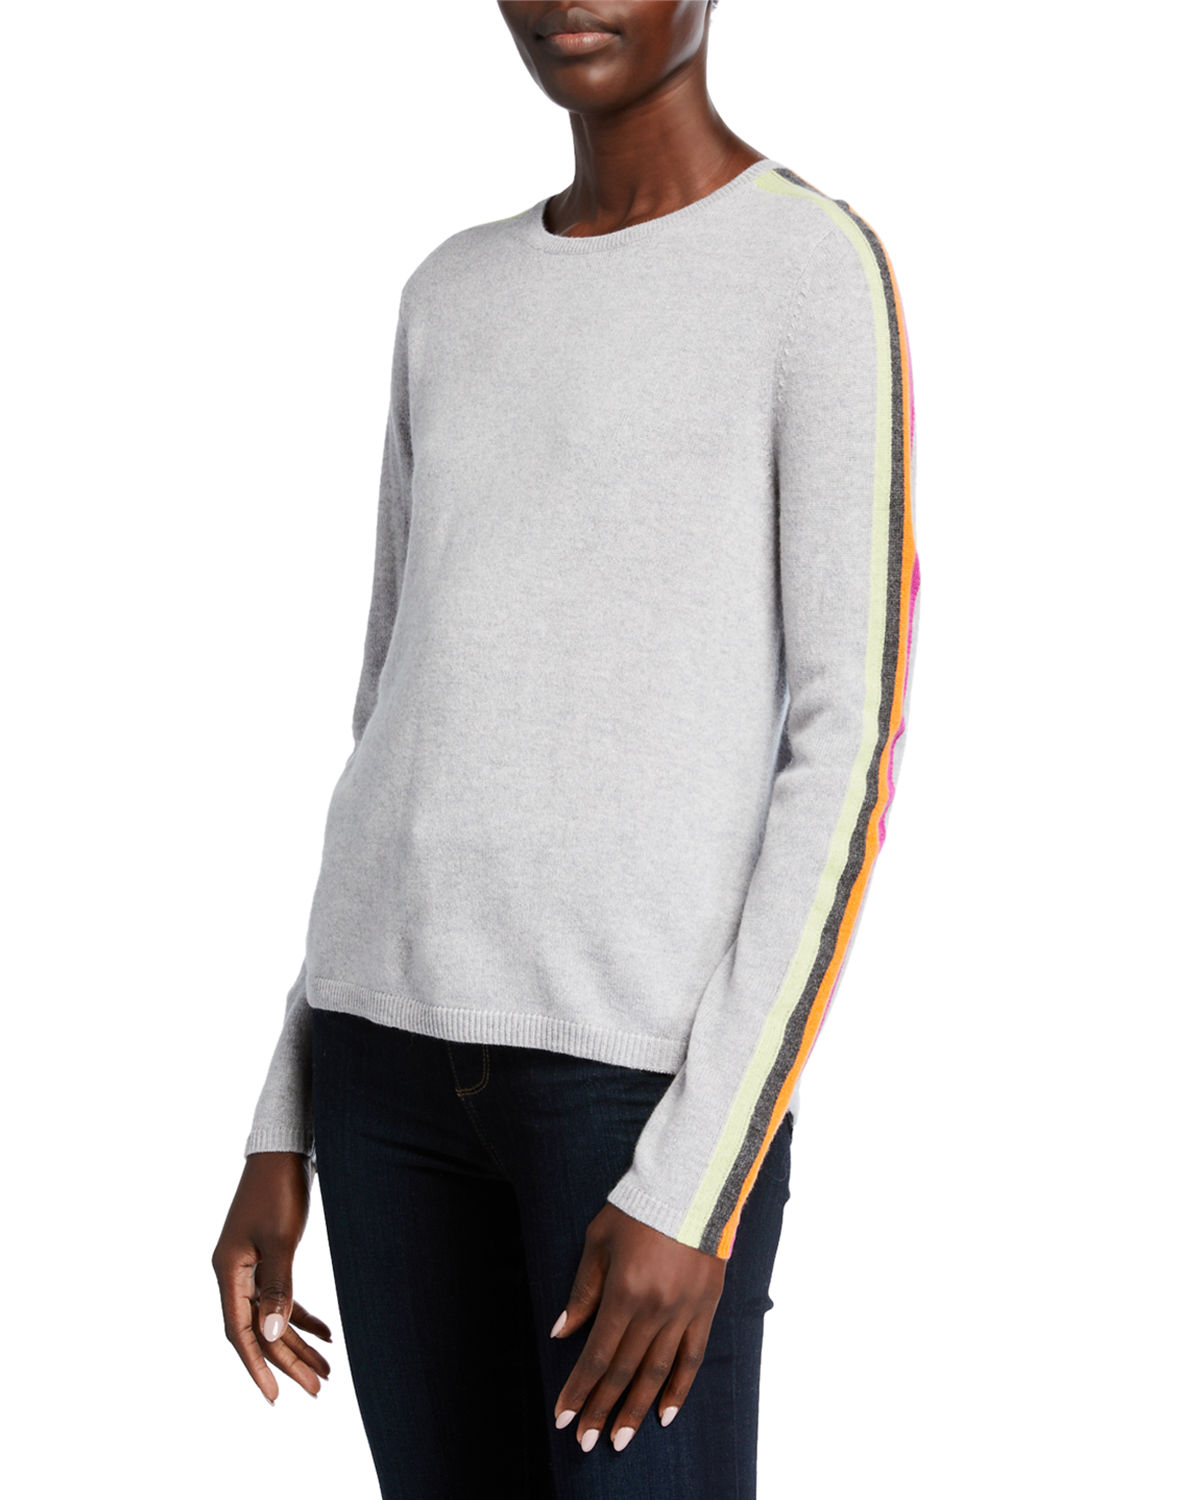 The Racer Cashmere Sweater w/ Striped Sleeves